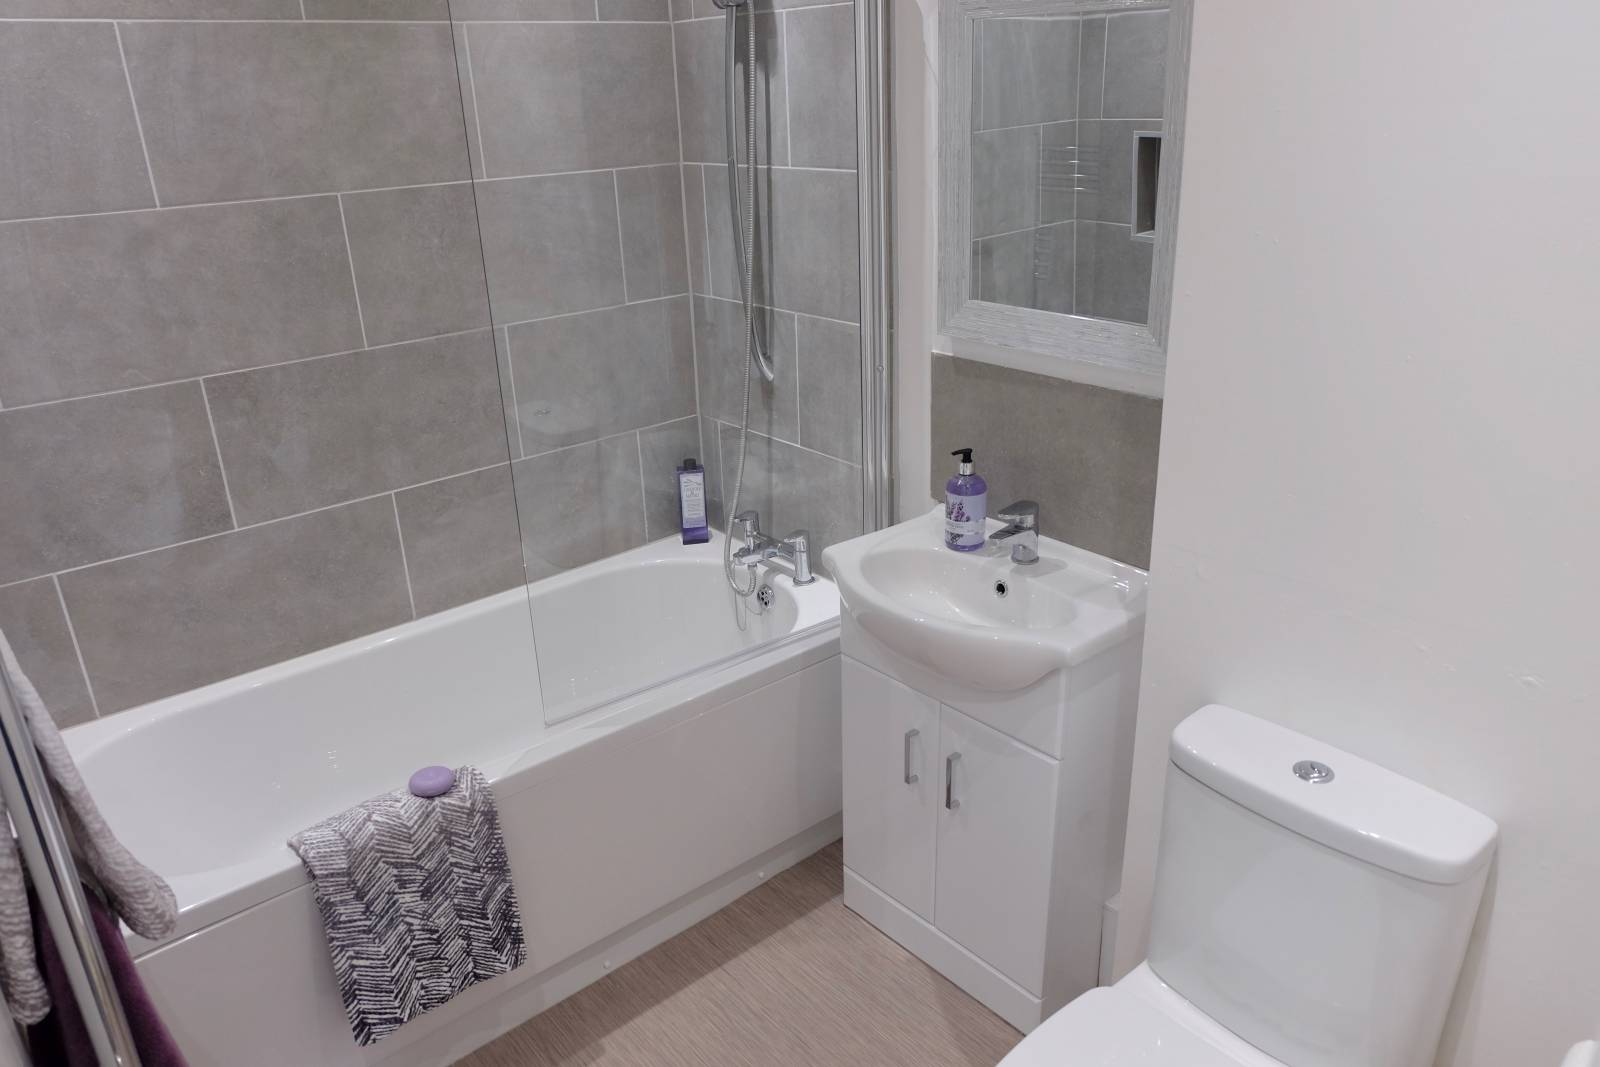 *** SPACIOUS 2 BEDROOM FLAT *** Private Entrance. Beautiful flat. It is fully furnished – Turn key property – Walk in & relax. It has everything you will need (apart from a TV) House fully furnished as dressed on refurbishment. Quite area no children.